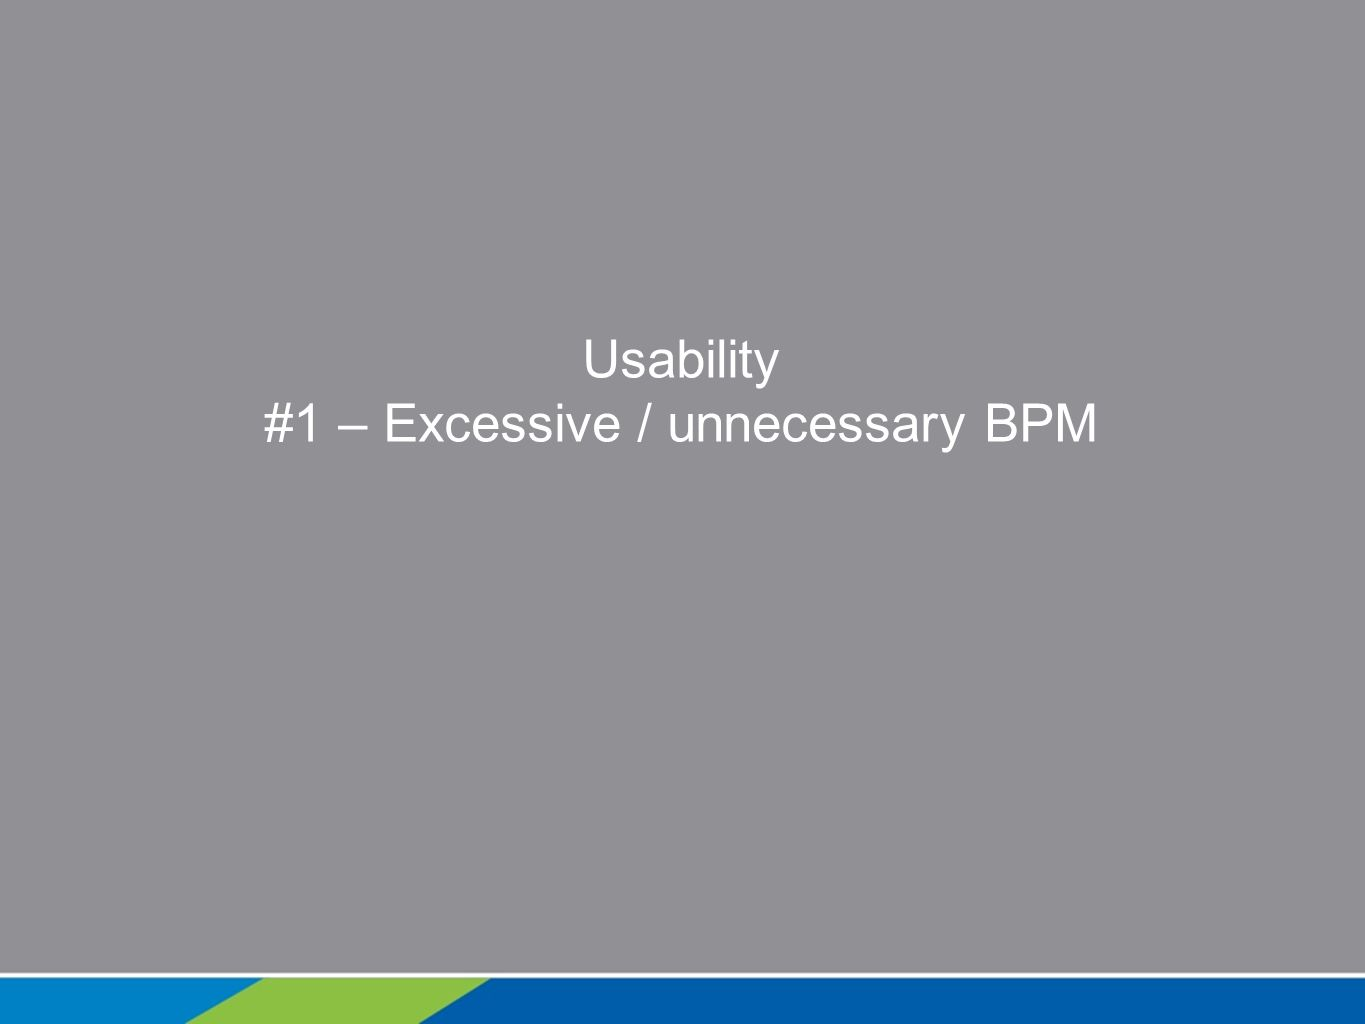 Usability #1 – Excessive / unnecessary BPM